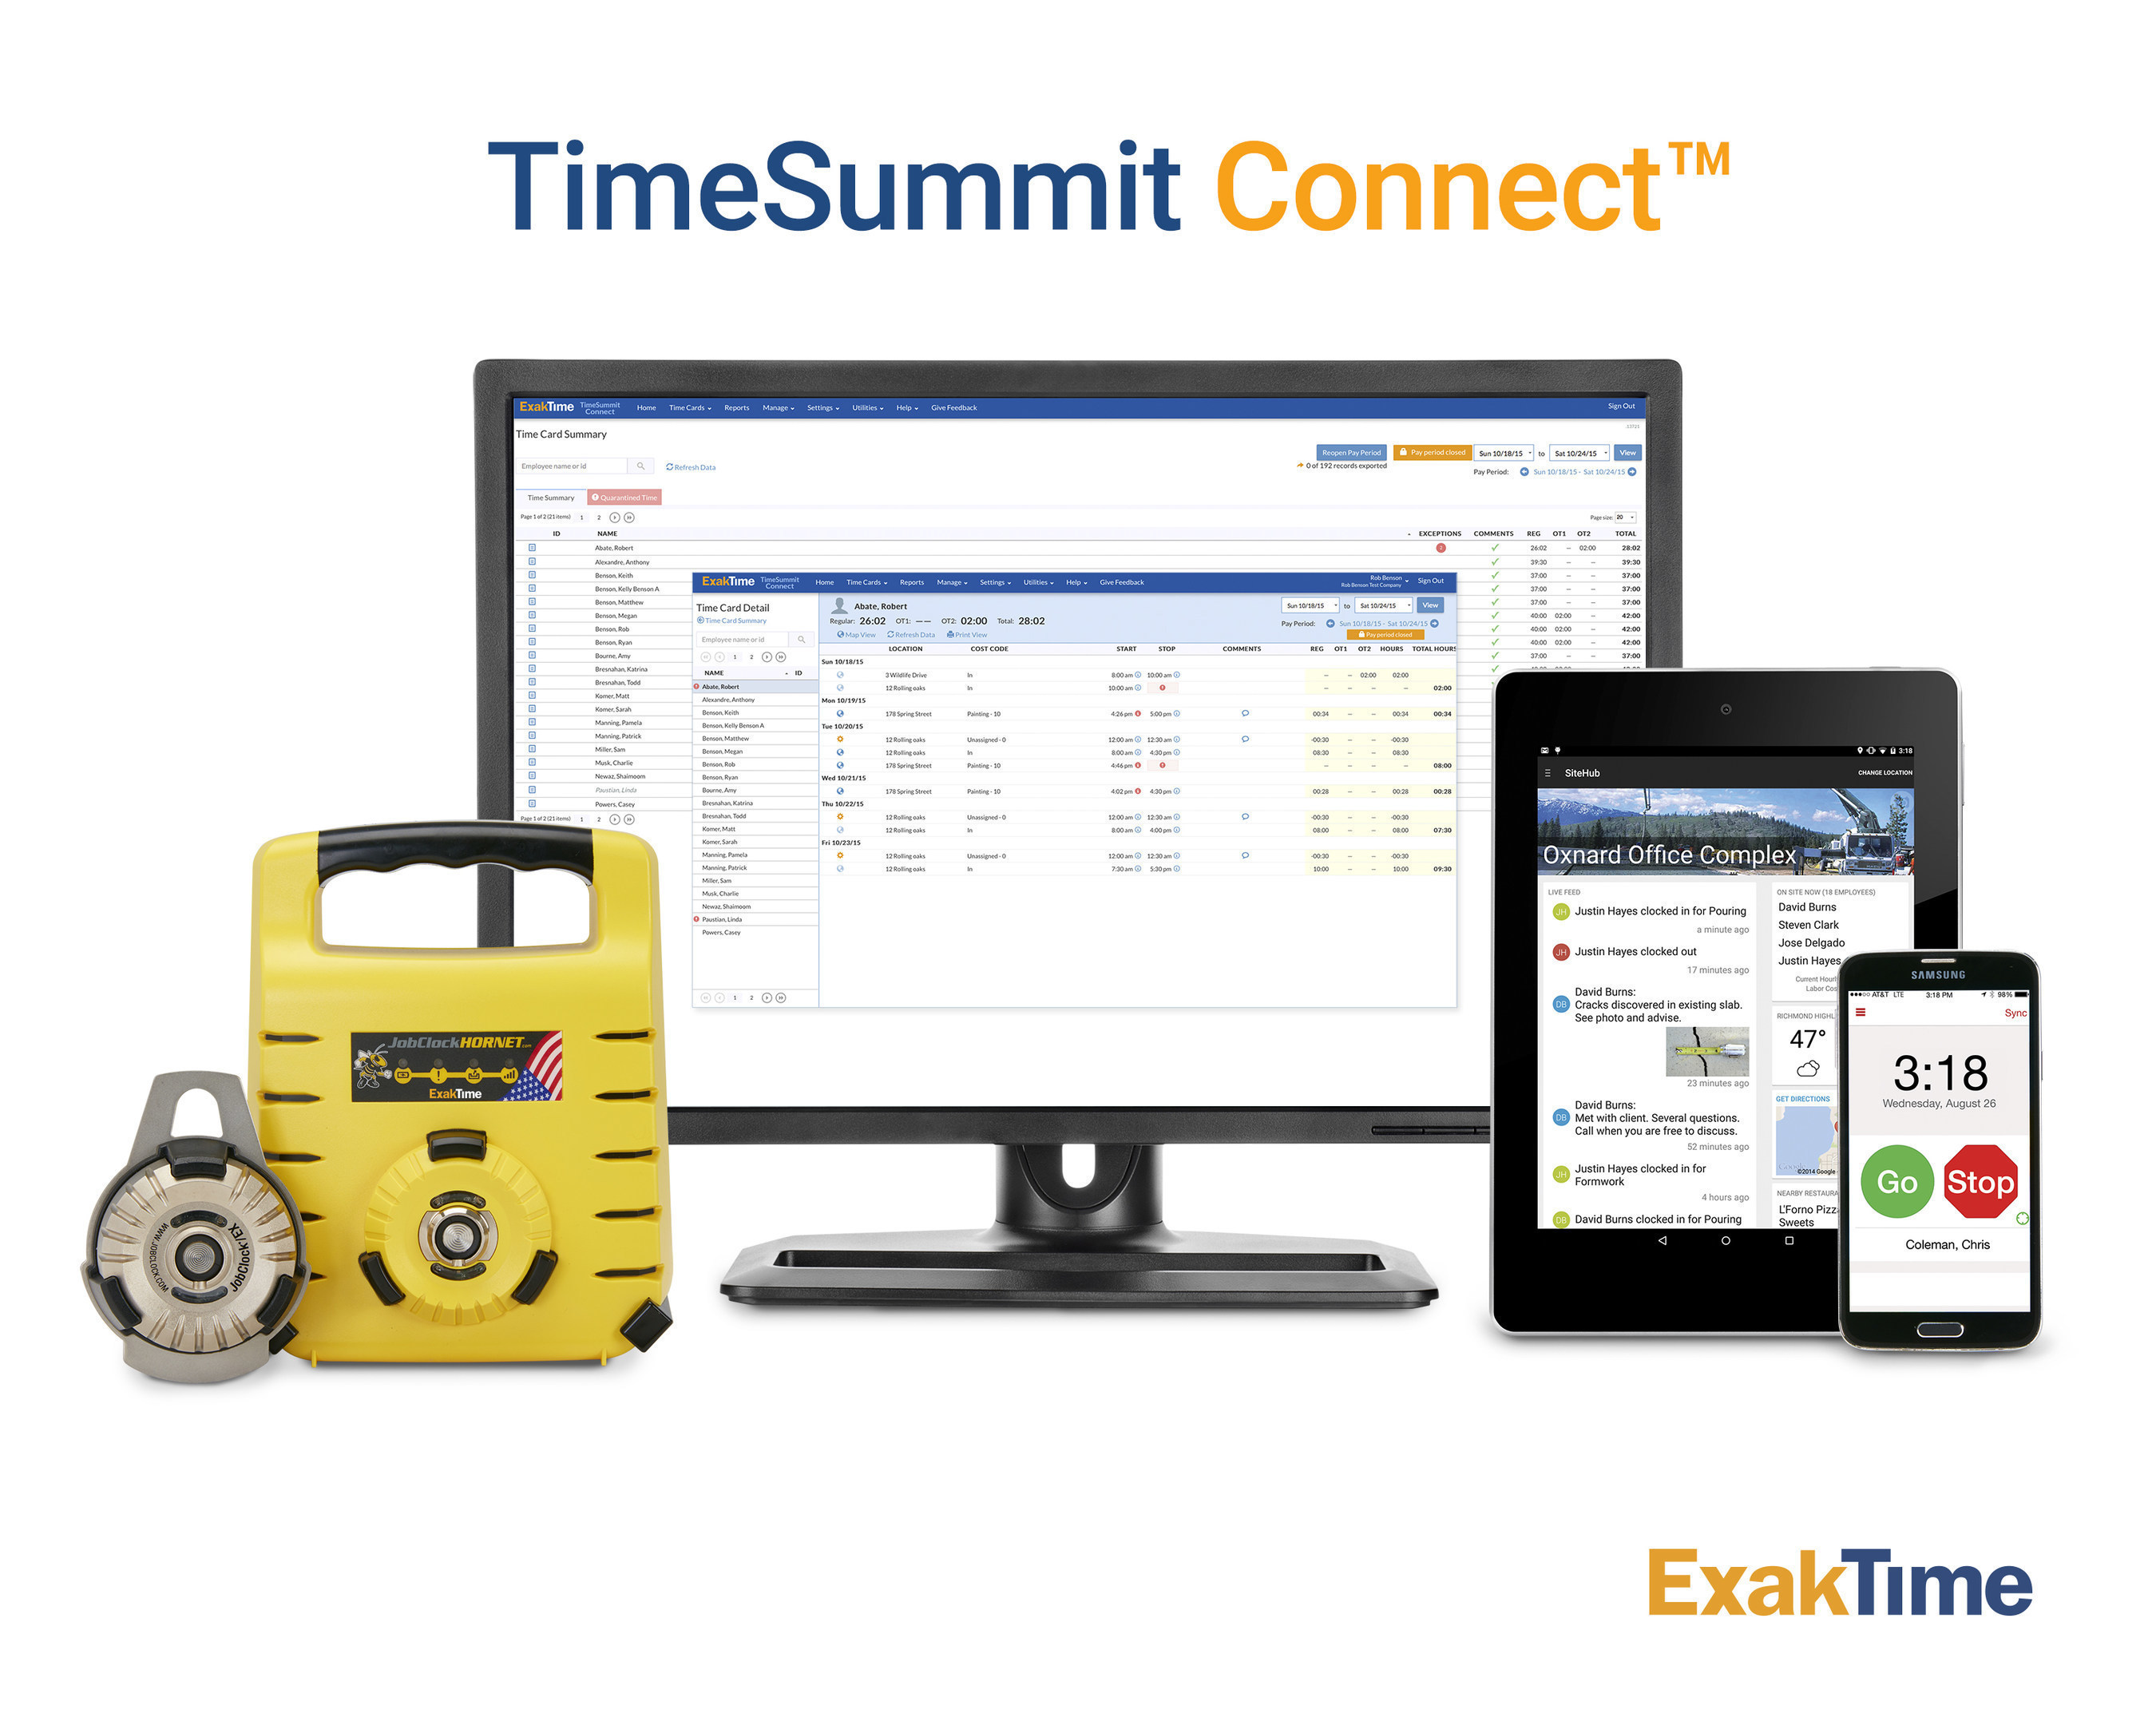 Web-based workforce management from anywhere, on any device